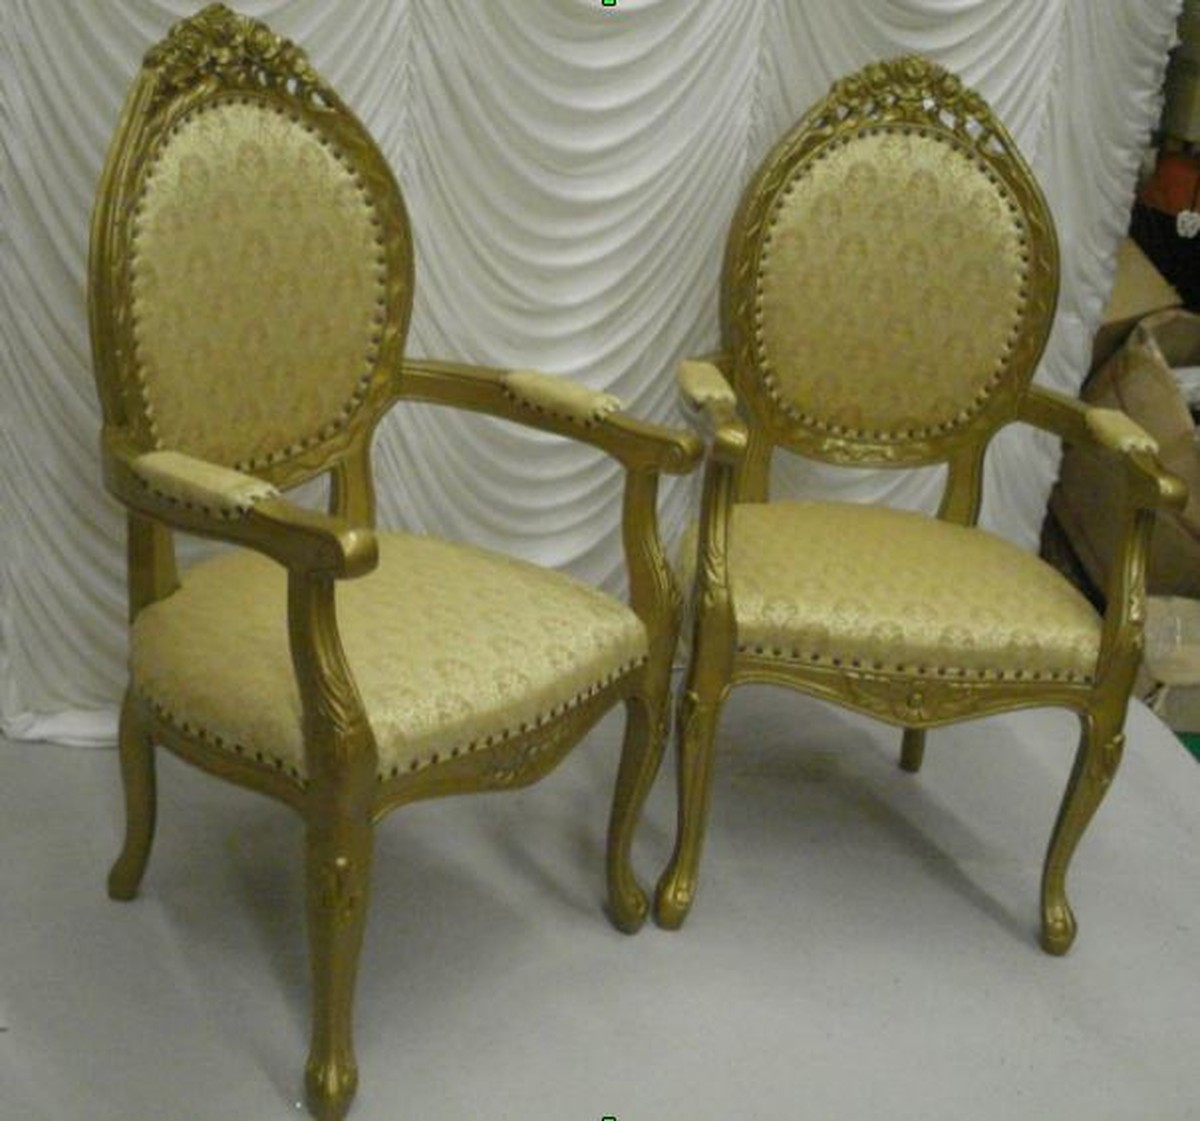 throne chair for sale covers craft ideas secondhand prop shop thrones and wedding chairs 2x